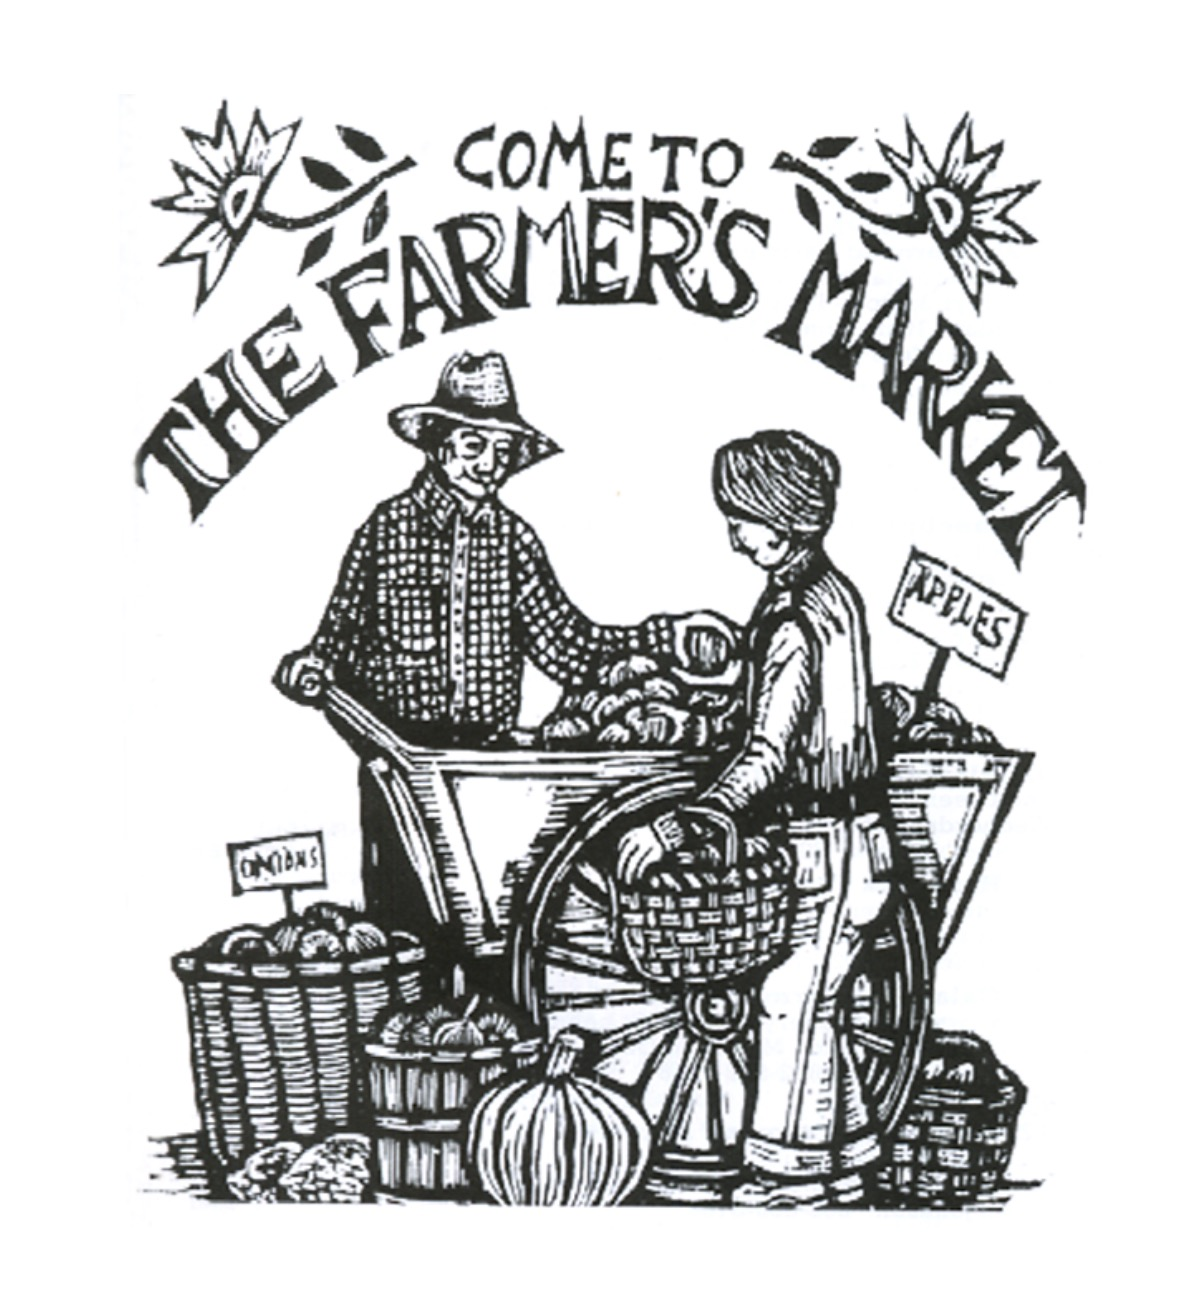 Market clipart outdoor market Middlebury  HOME Farmers Market